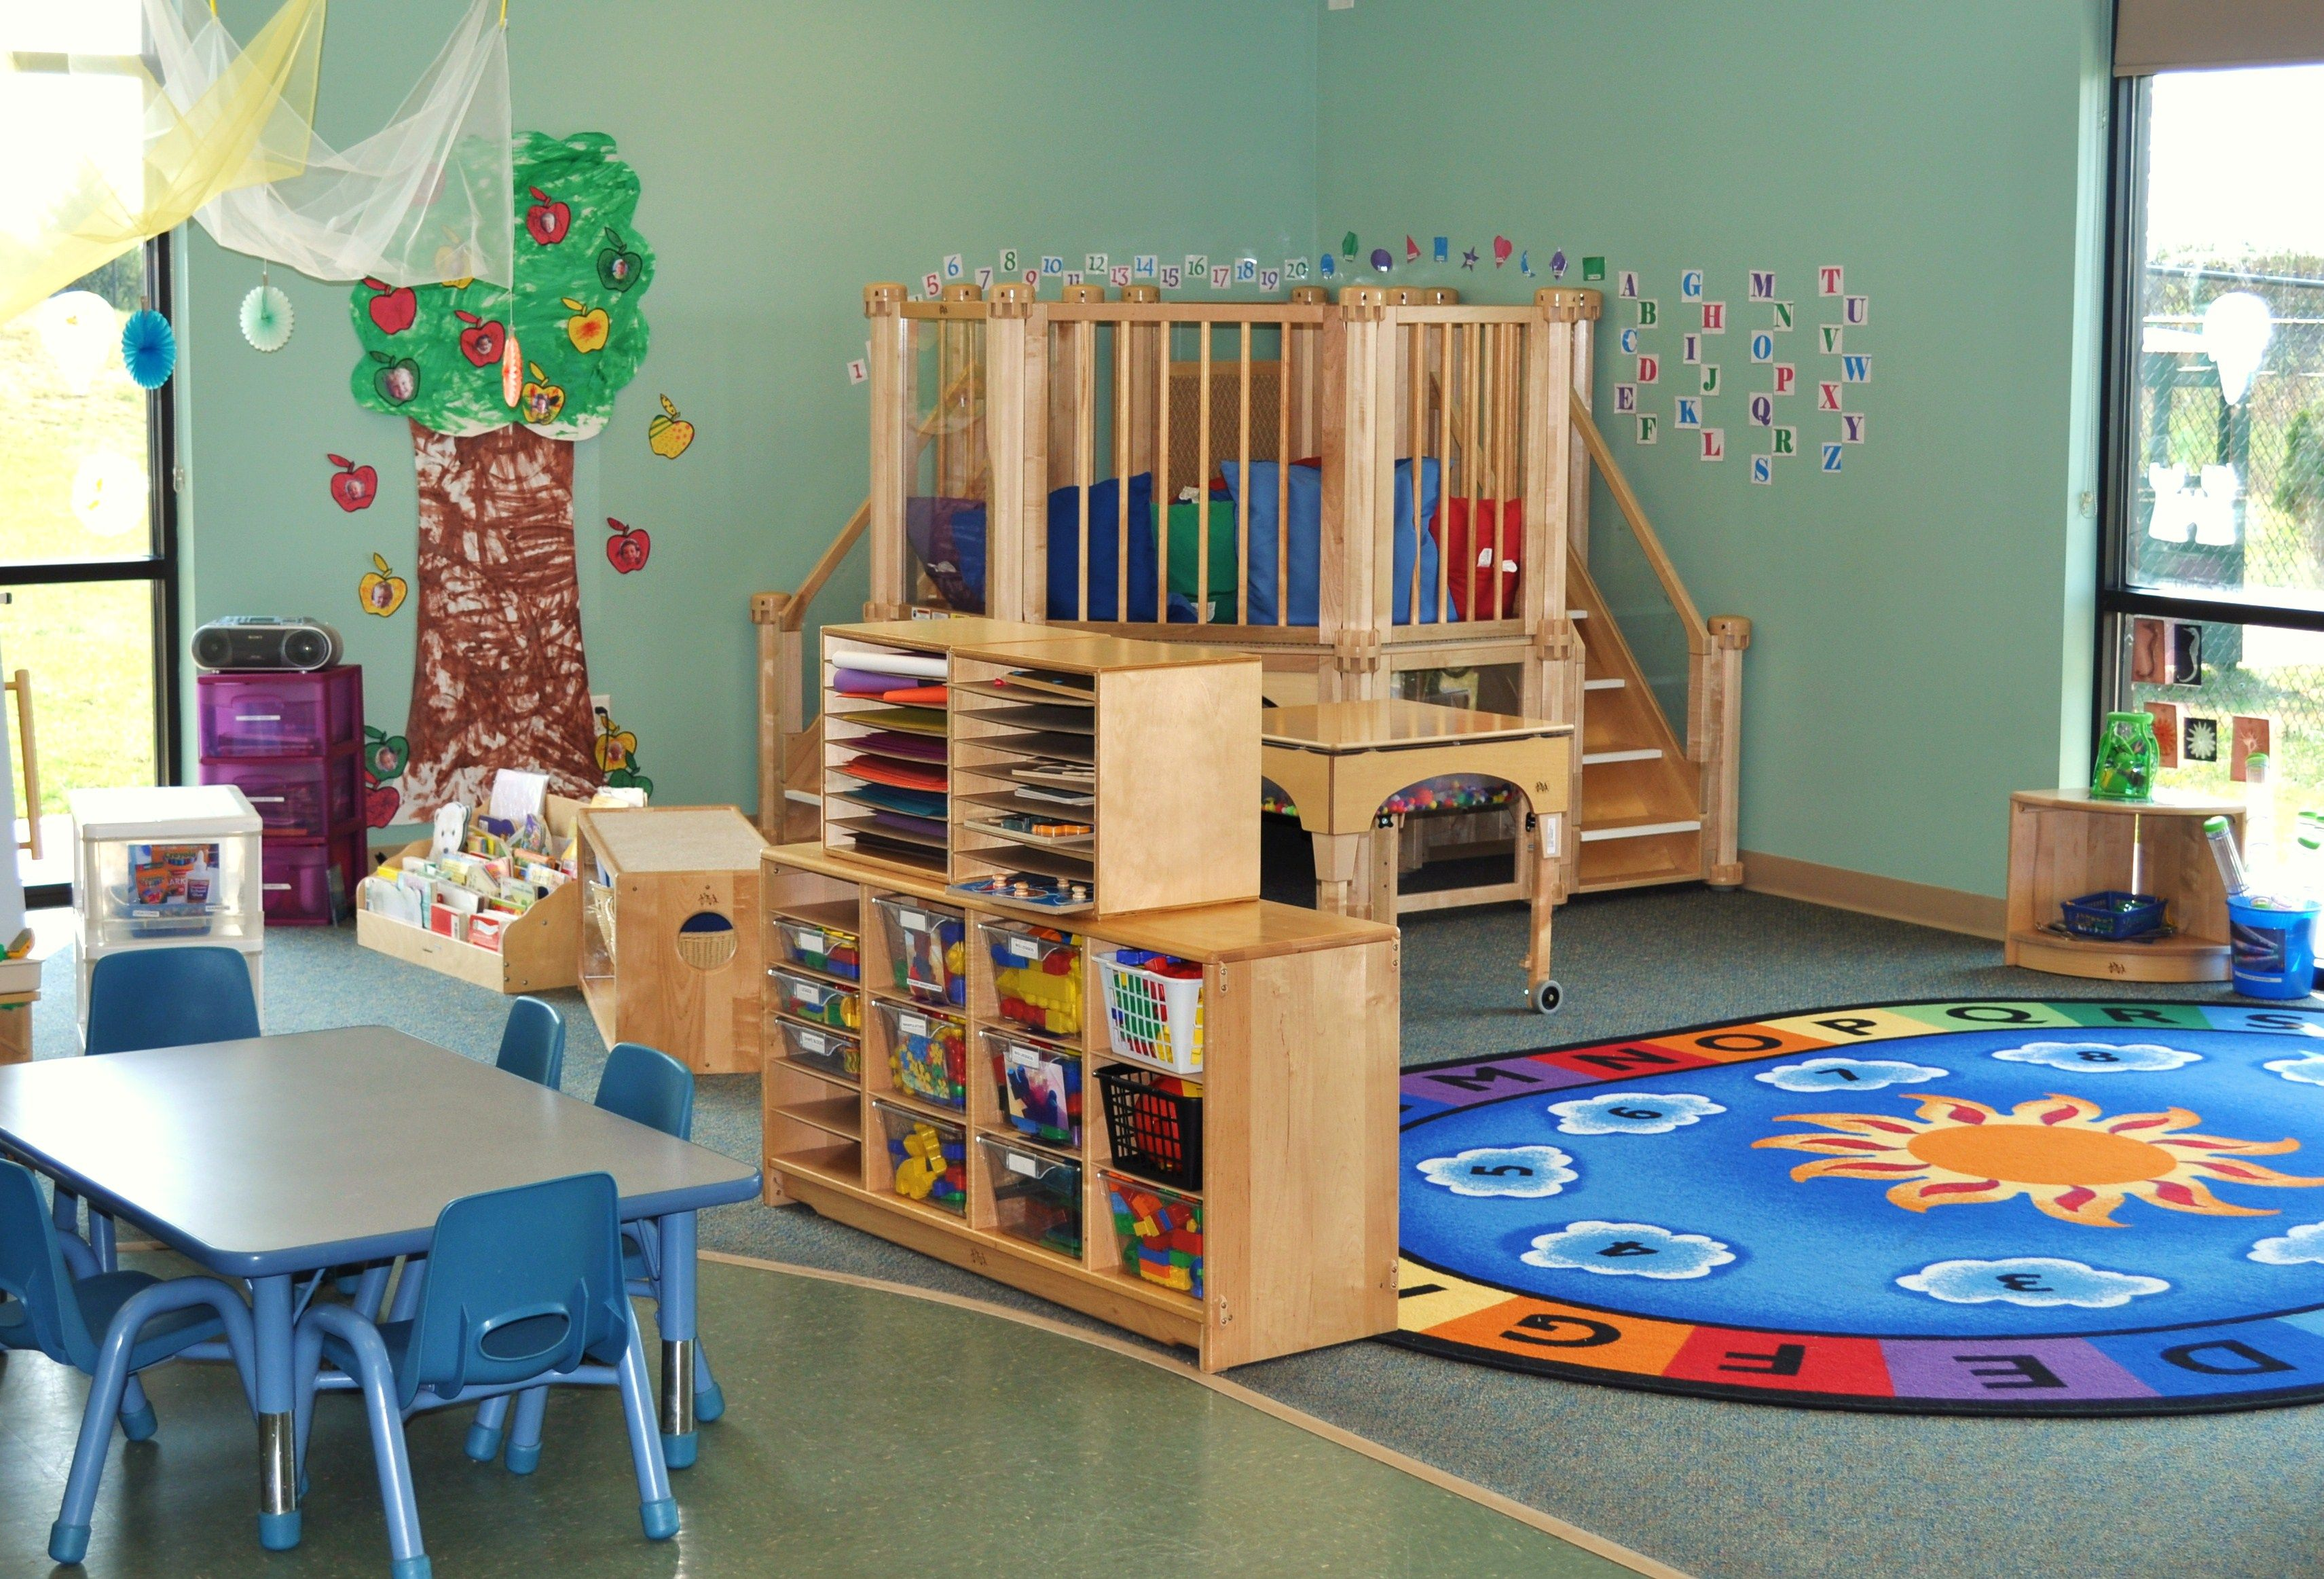 preschool rooms two s room the two s three s room designed for children ages - Designing A Home Preschool Room